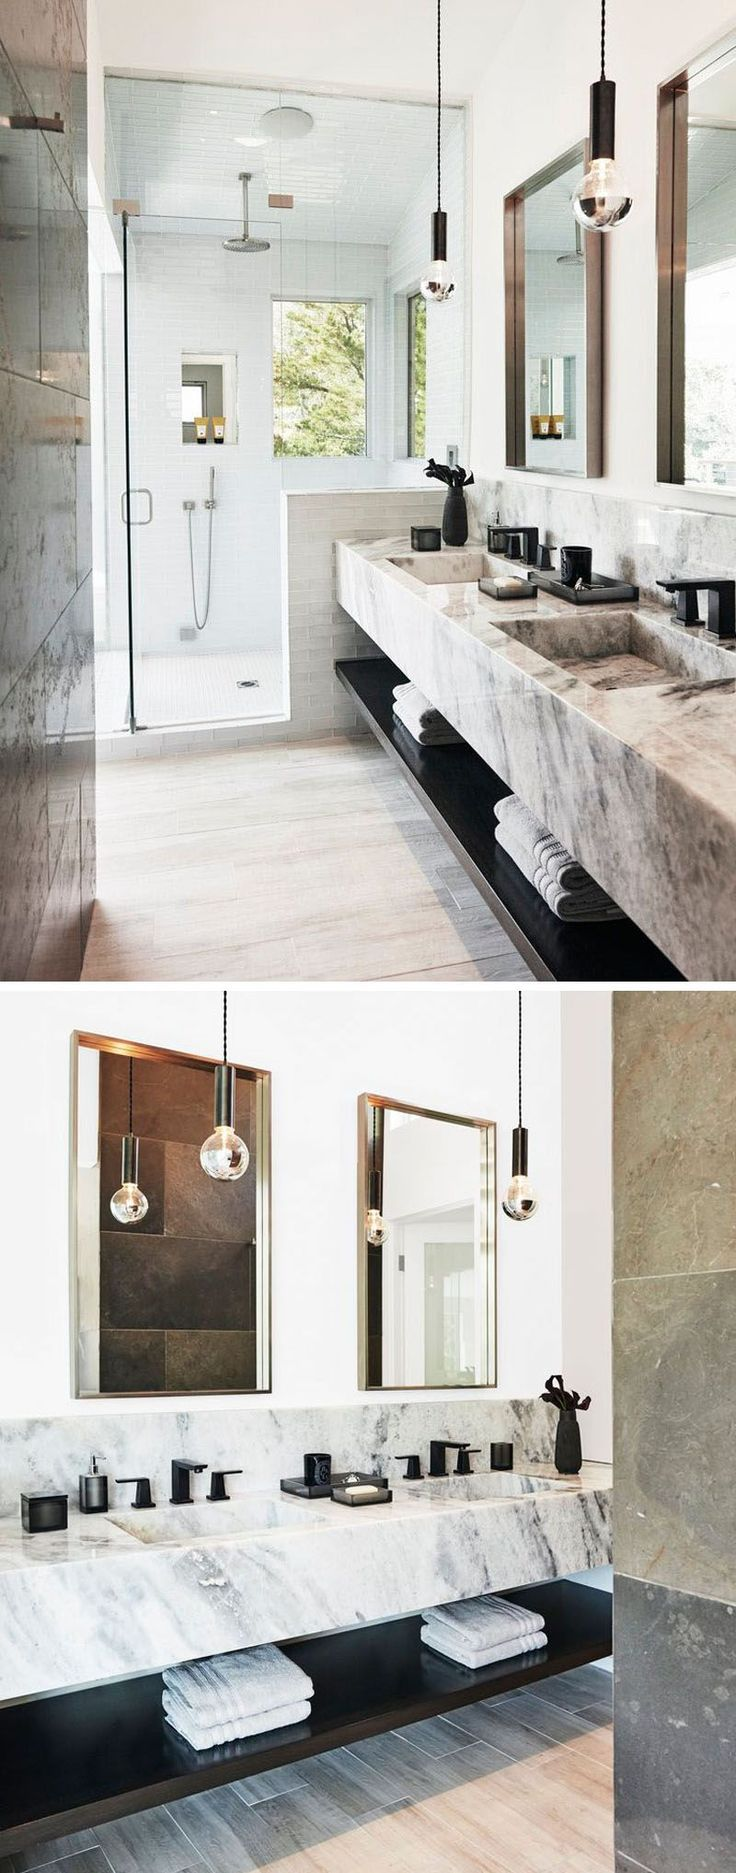 In this master bathroom, there's an oversized steam shower and a custom  dual vanity made